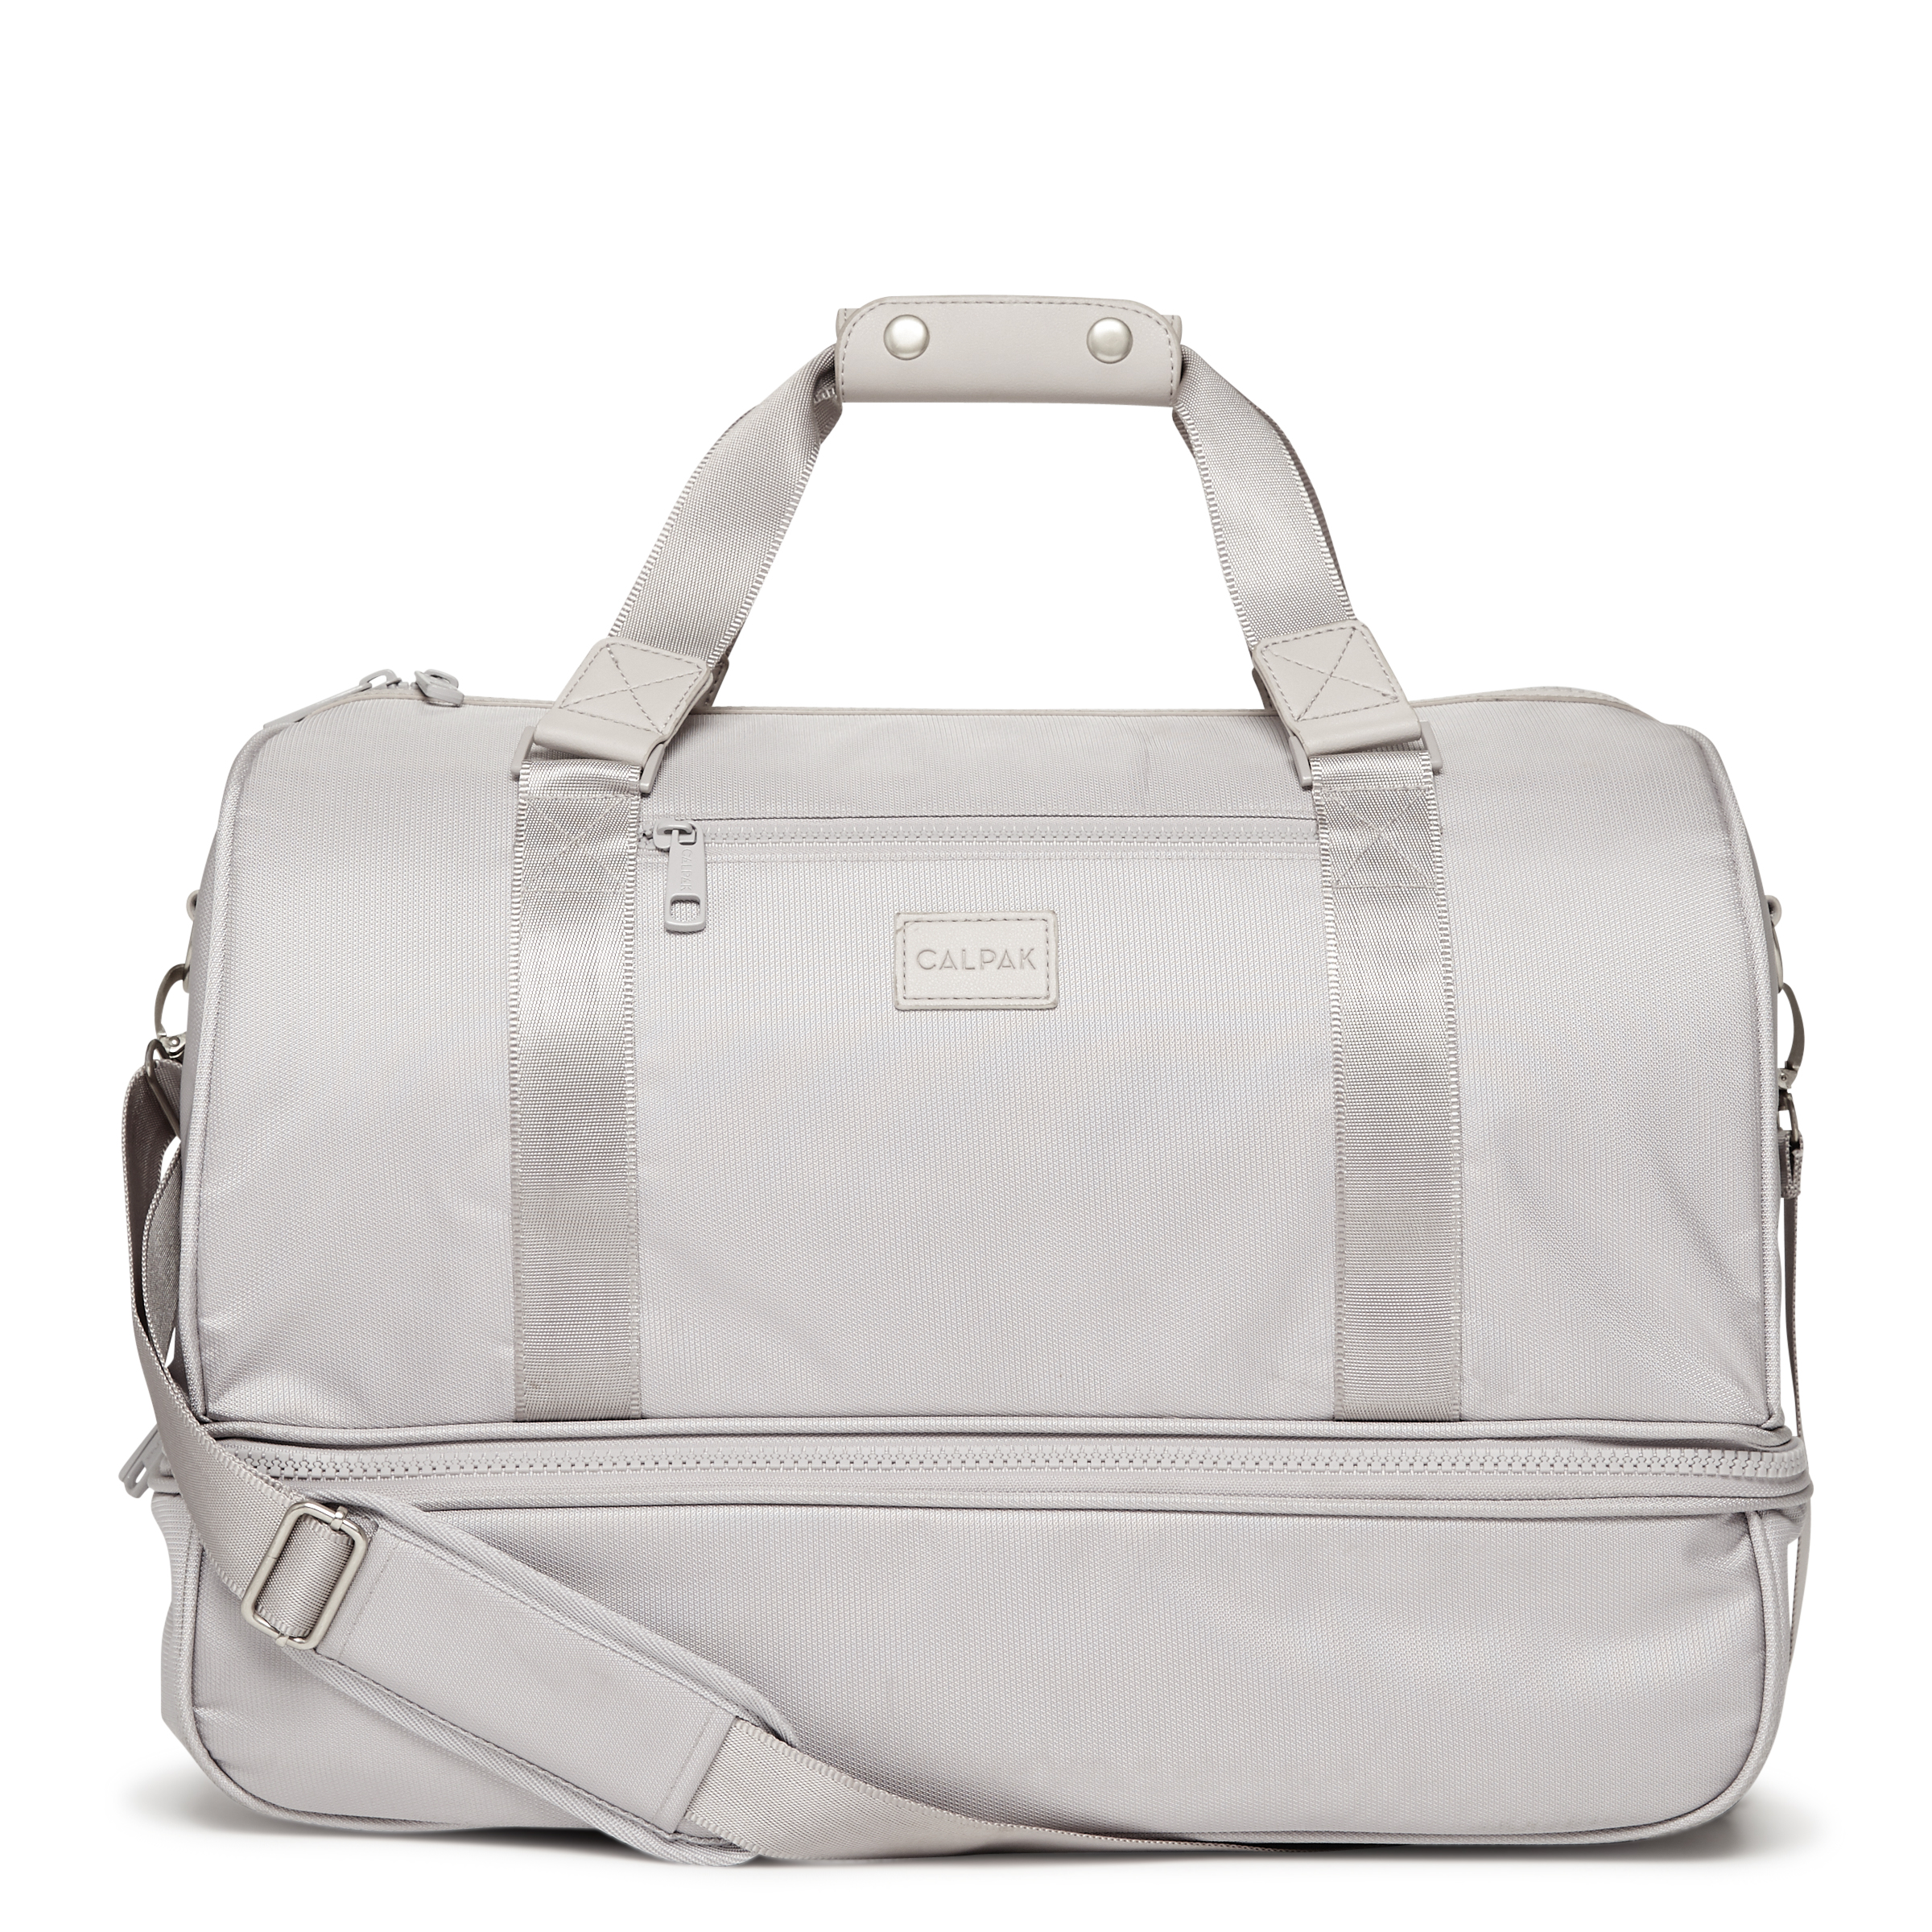 Stevyn Duffel Bags - The Stevyn Duffel Bag is the only duffel bag you'll ever need for overnighters, weekenders, or gym sessions. With interior and exterior pockets PLUS a large bottom compartment, you're able to stay extra organized and well-prepared.